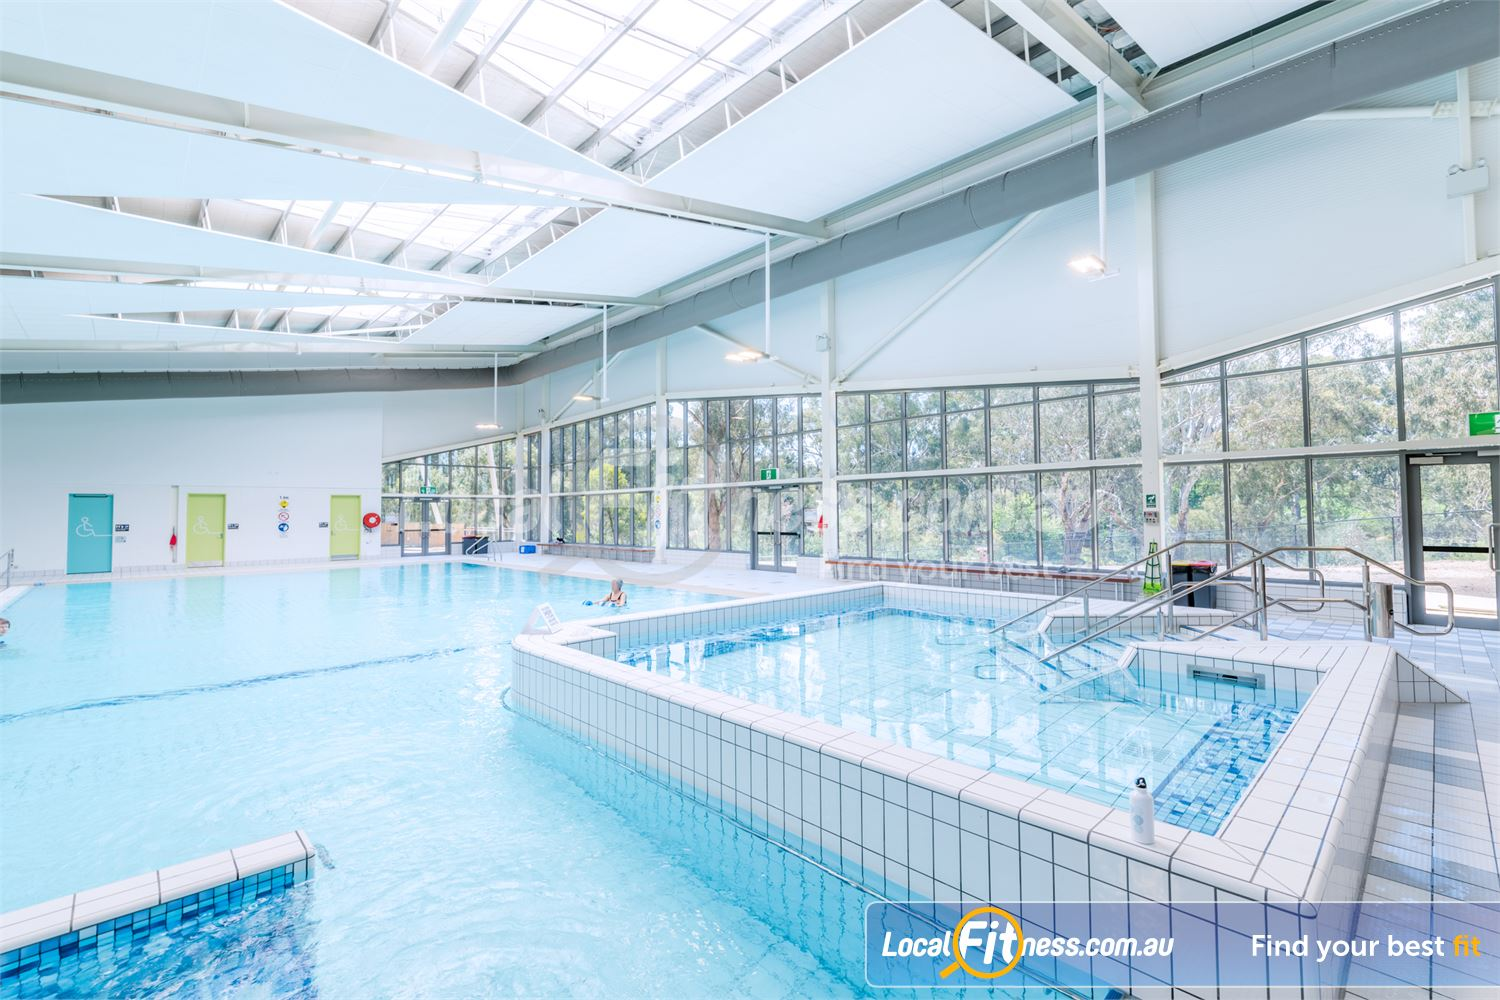 Eltham Leisure Centre Eltham Our spa is a great place to chill out after your gym, sport or swim session.